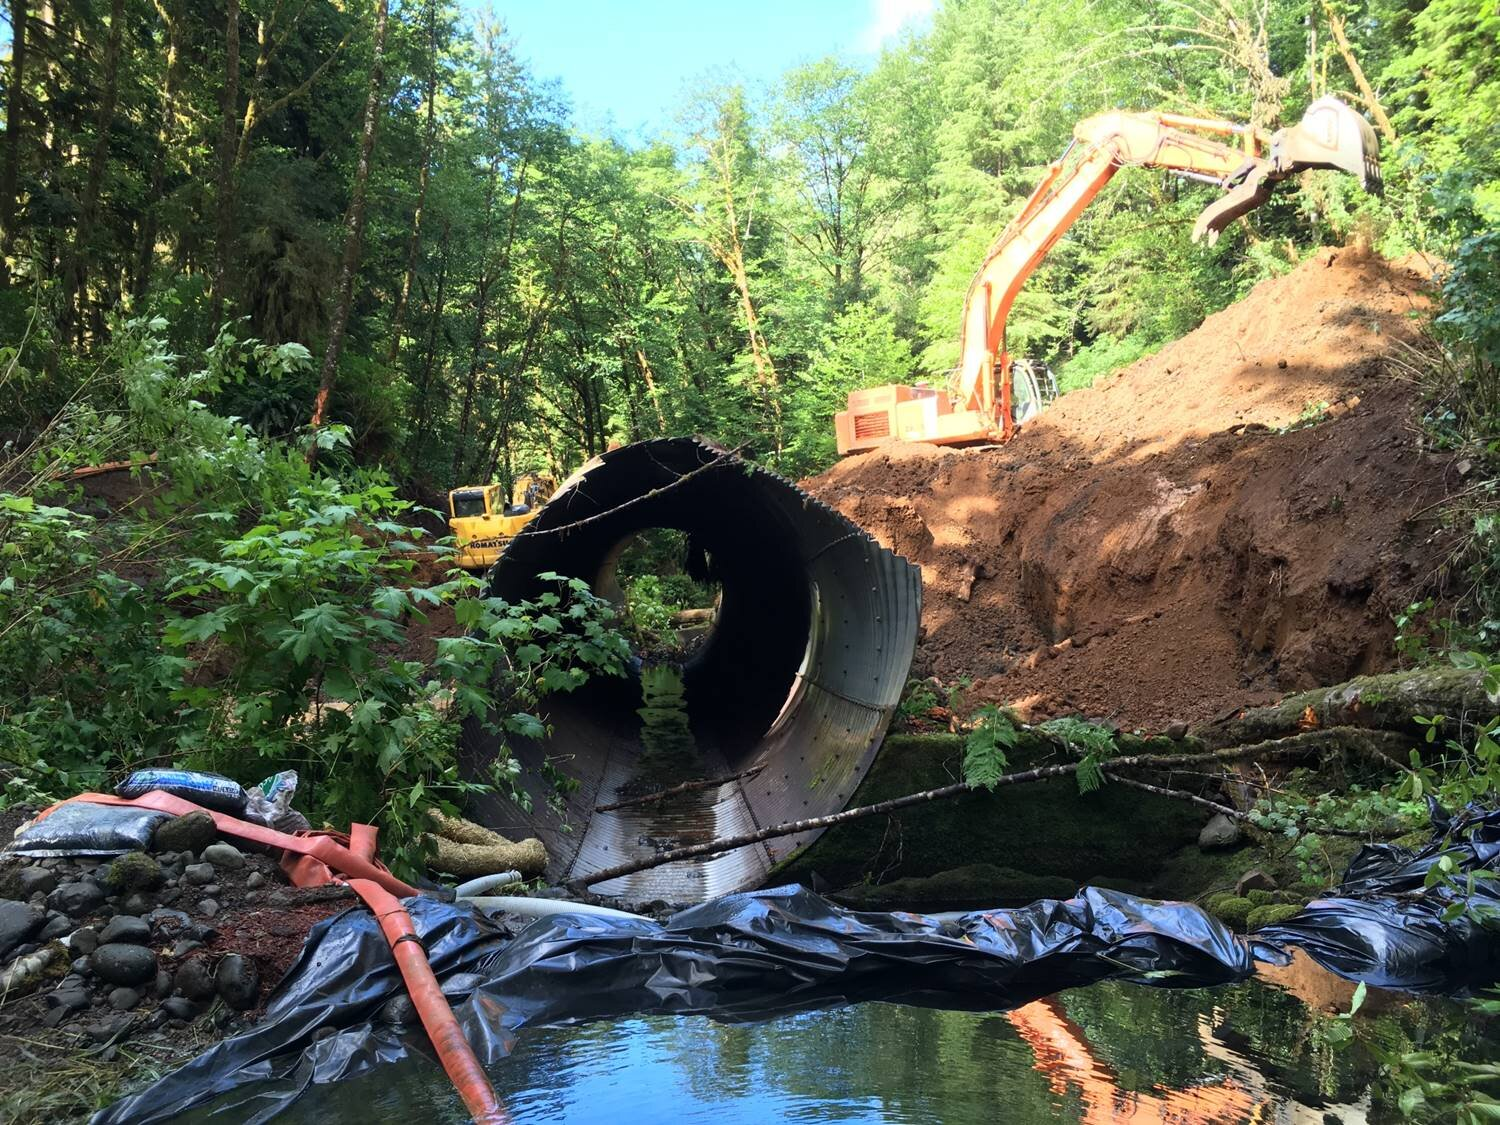 Removal of a large amount of fill from the road surface above the old culvert was required prior to its removal.